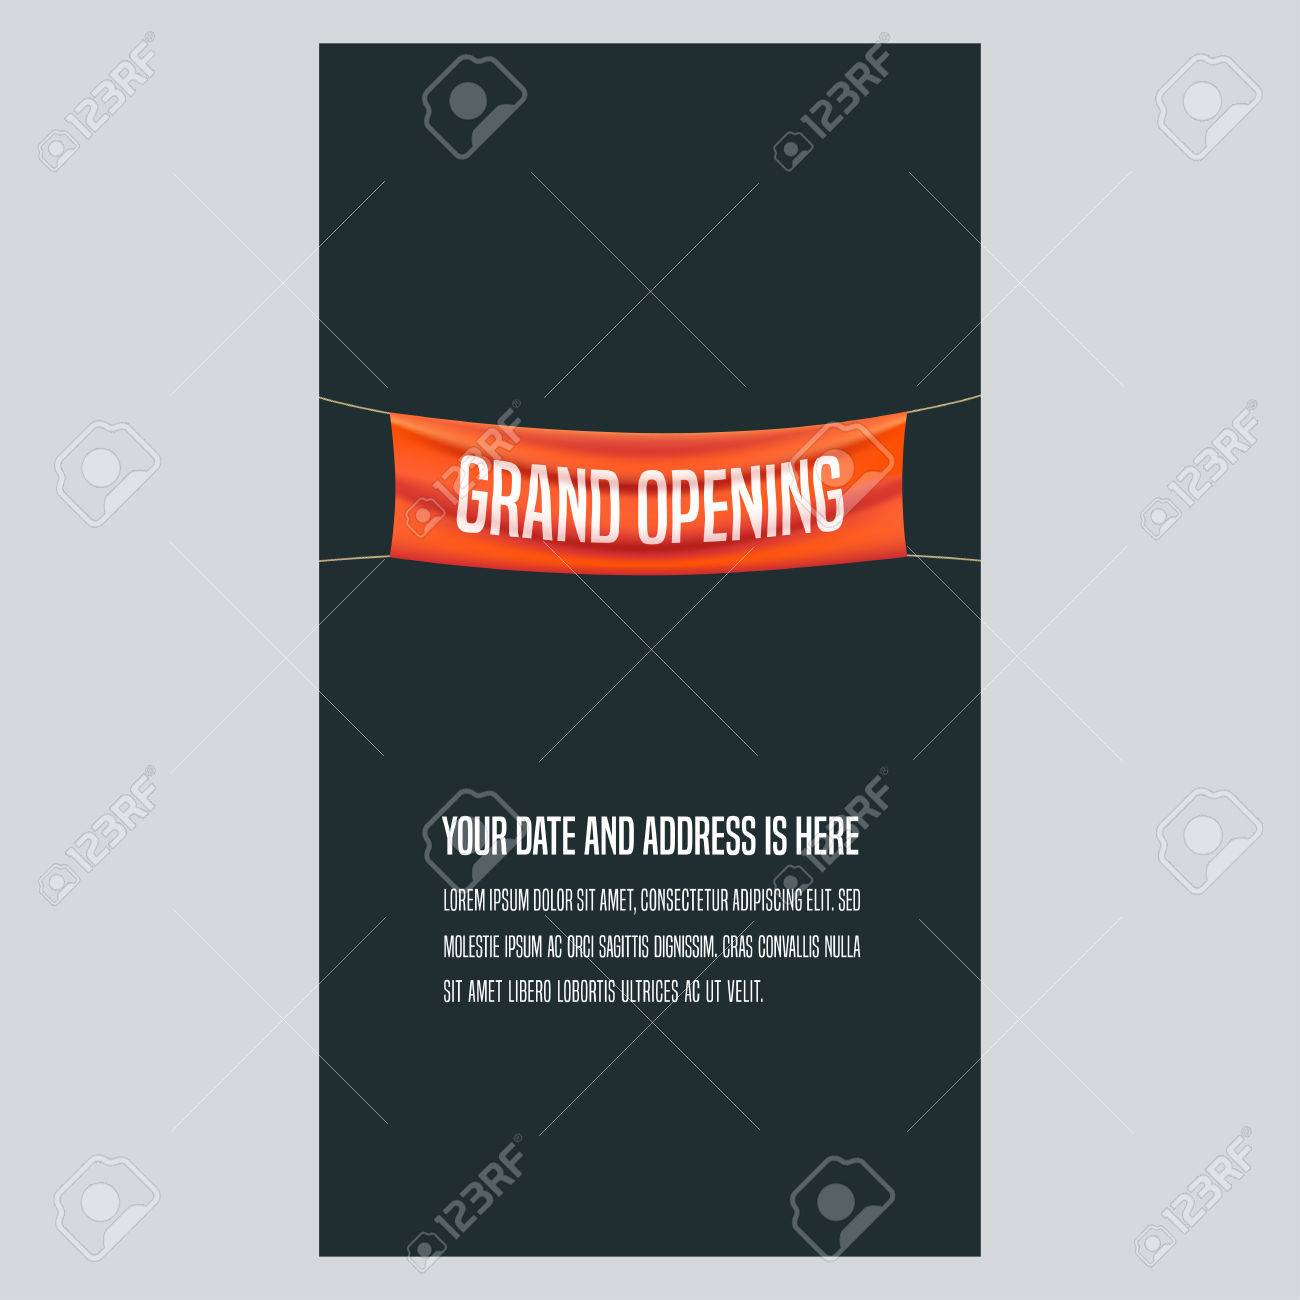 grand opening vertical vector illustration background for new